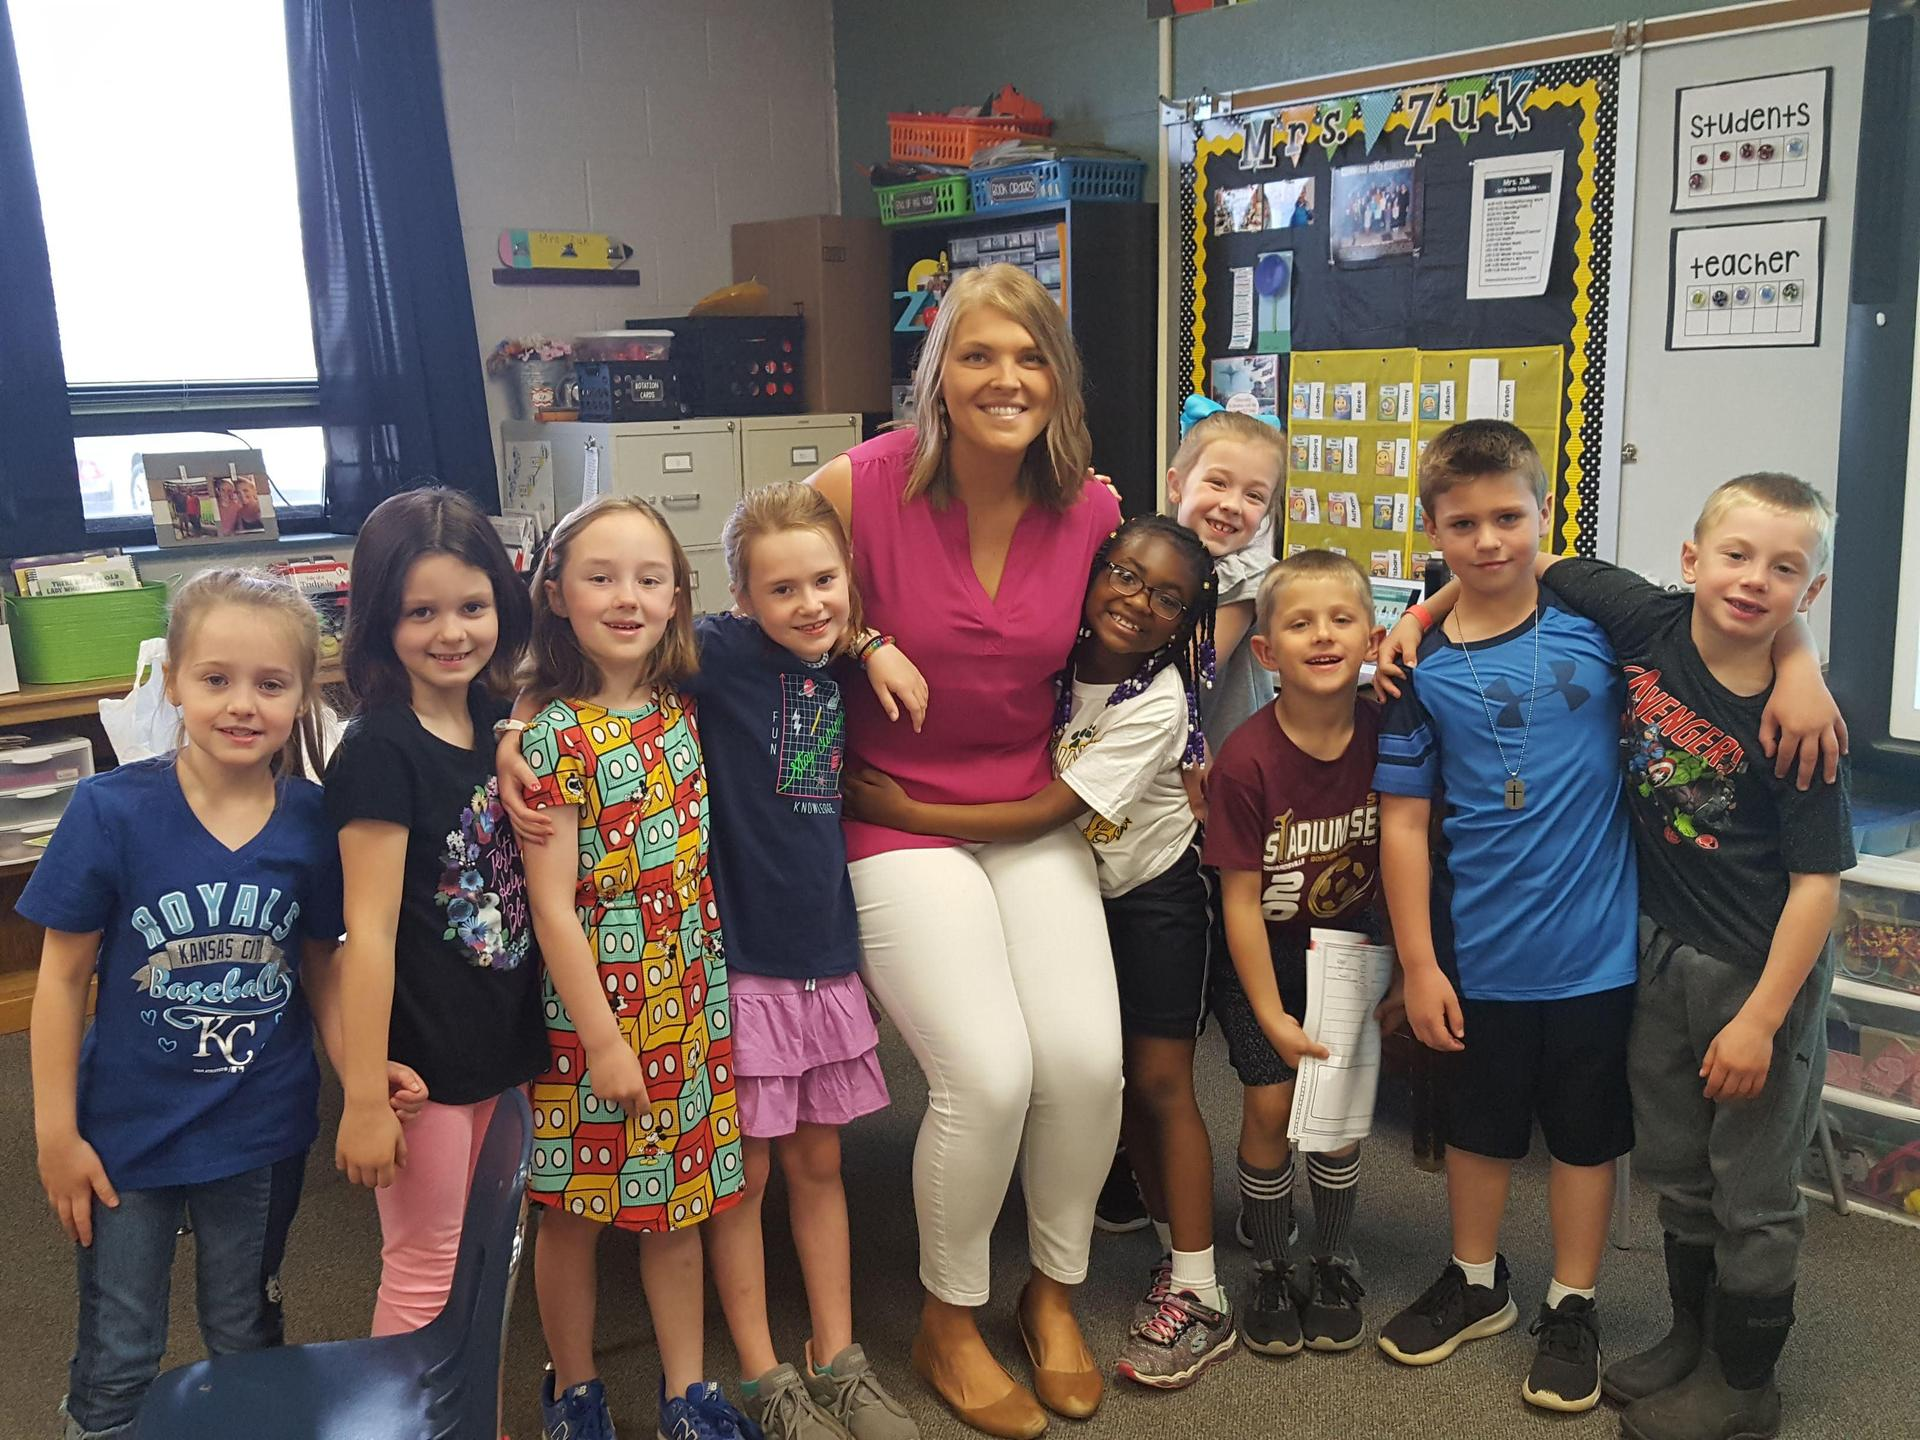 1st grade and Mrs. Zuk